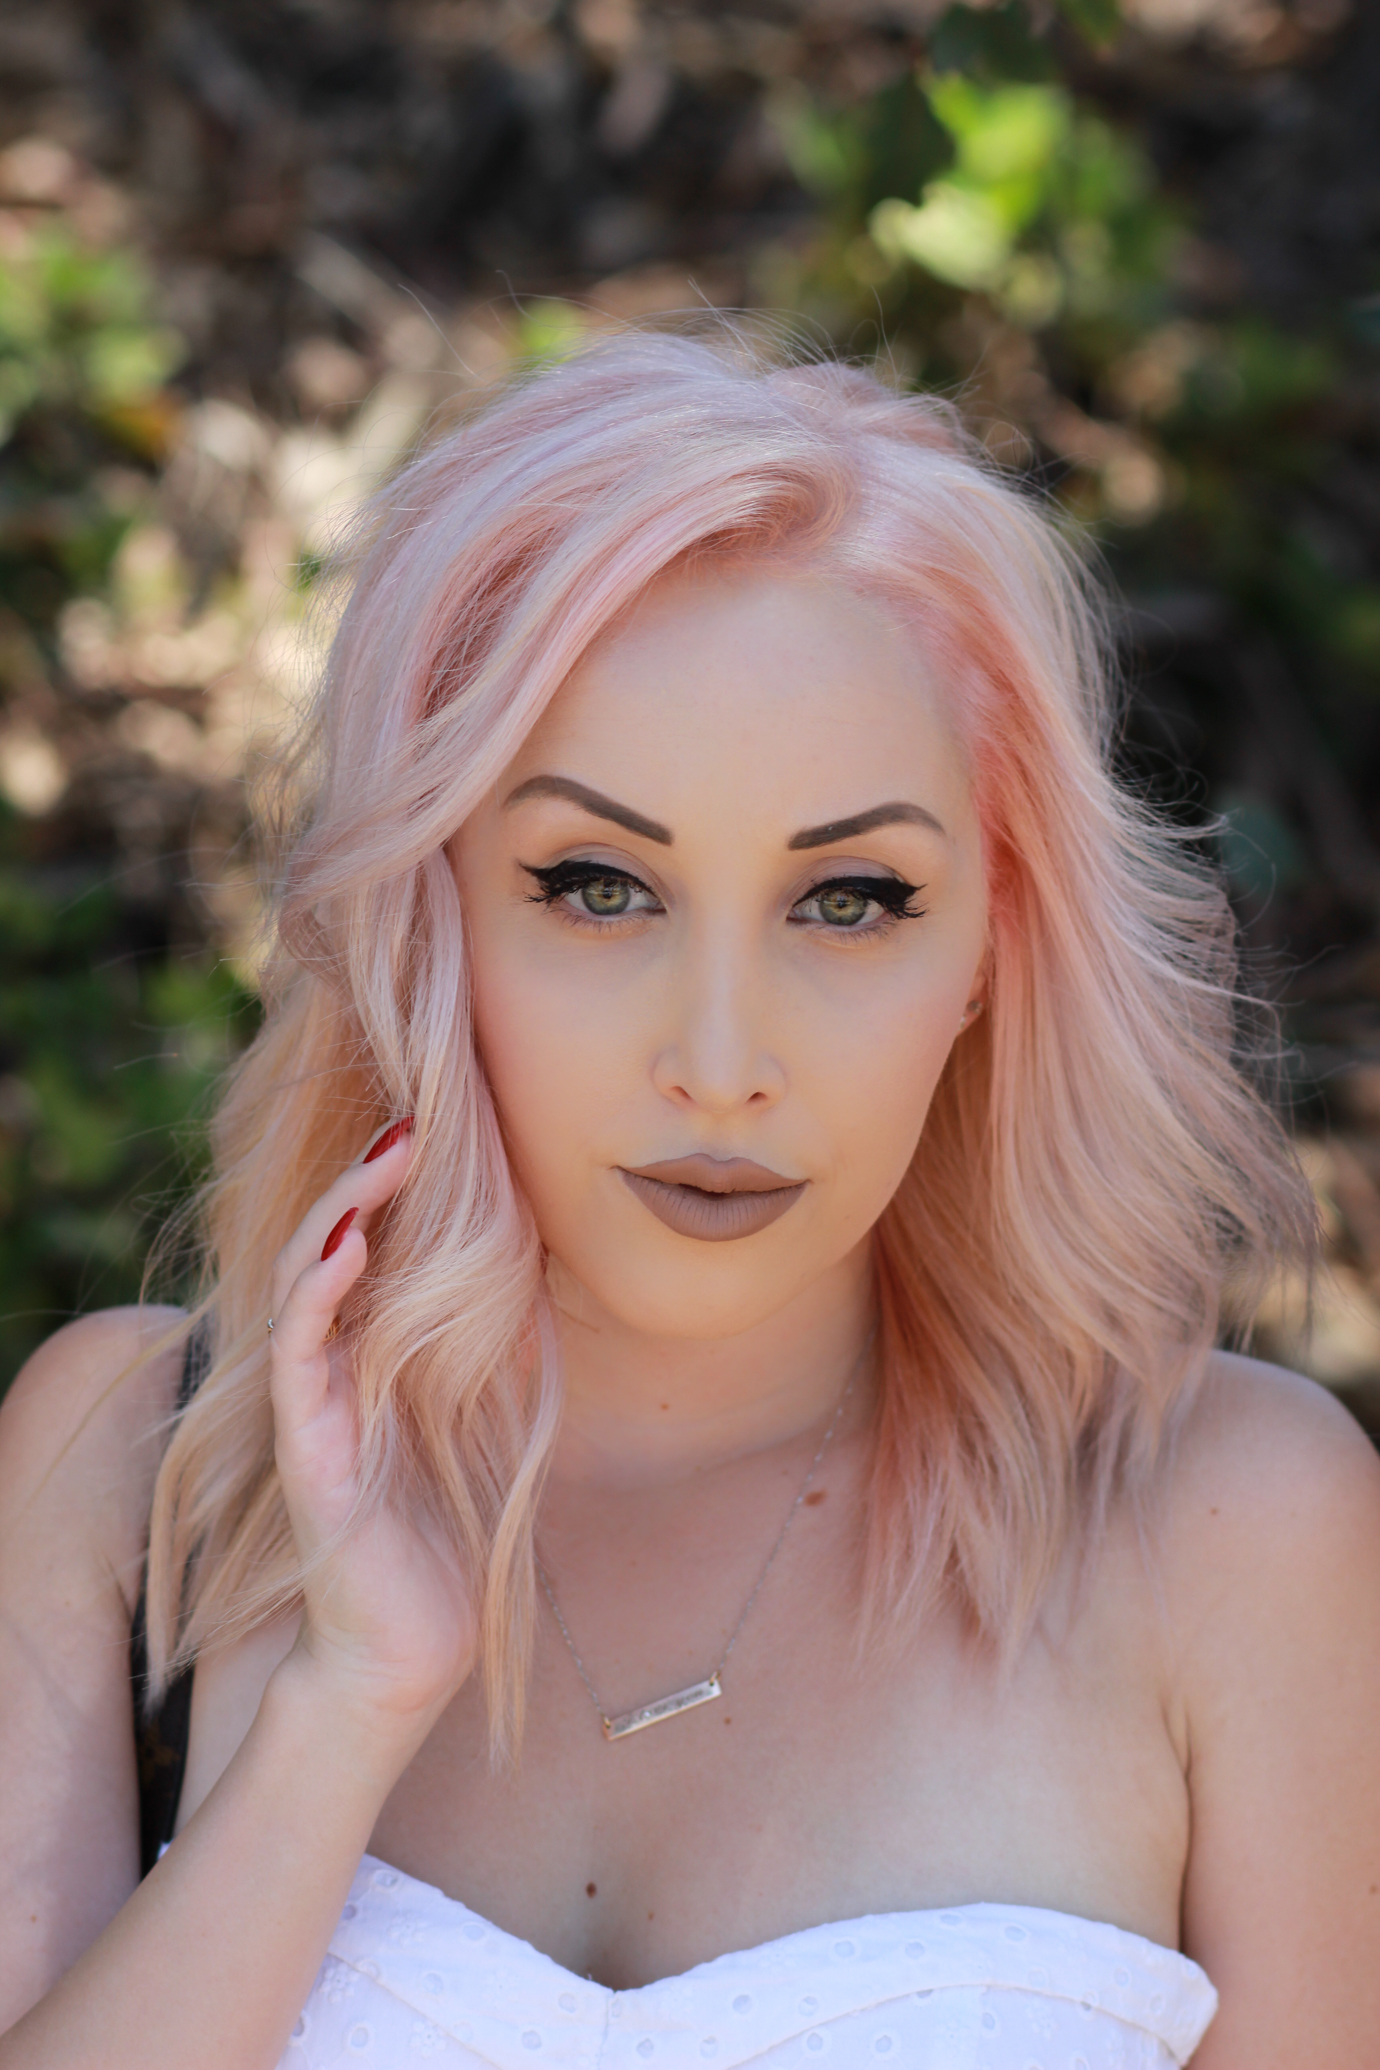 Blondie in the City | My experience getting my eyebrows microbladed | Pastel pink hair | Semi-Permanent Eyebrows